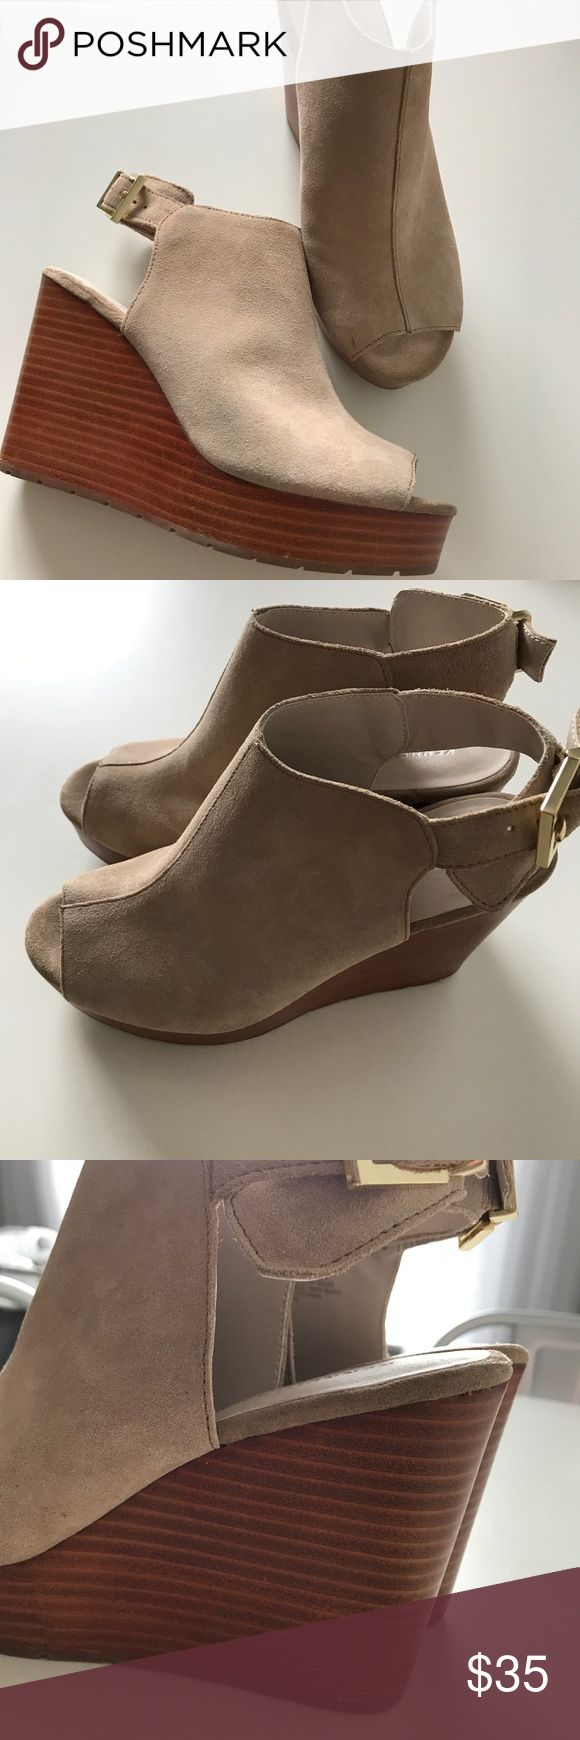 """Kenneth Cole """"Octavia"""" Sling Back Leather Wedges Kenneth Cole """"Octavia"""" Sling Back Leather Wedges - Gorgeous size 7's. Fits true to size. Normal wear and tear. Kenneth Cole Shoes Wedges"""